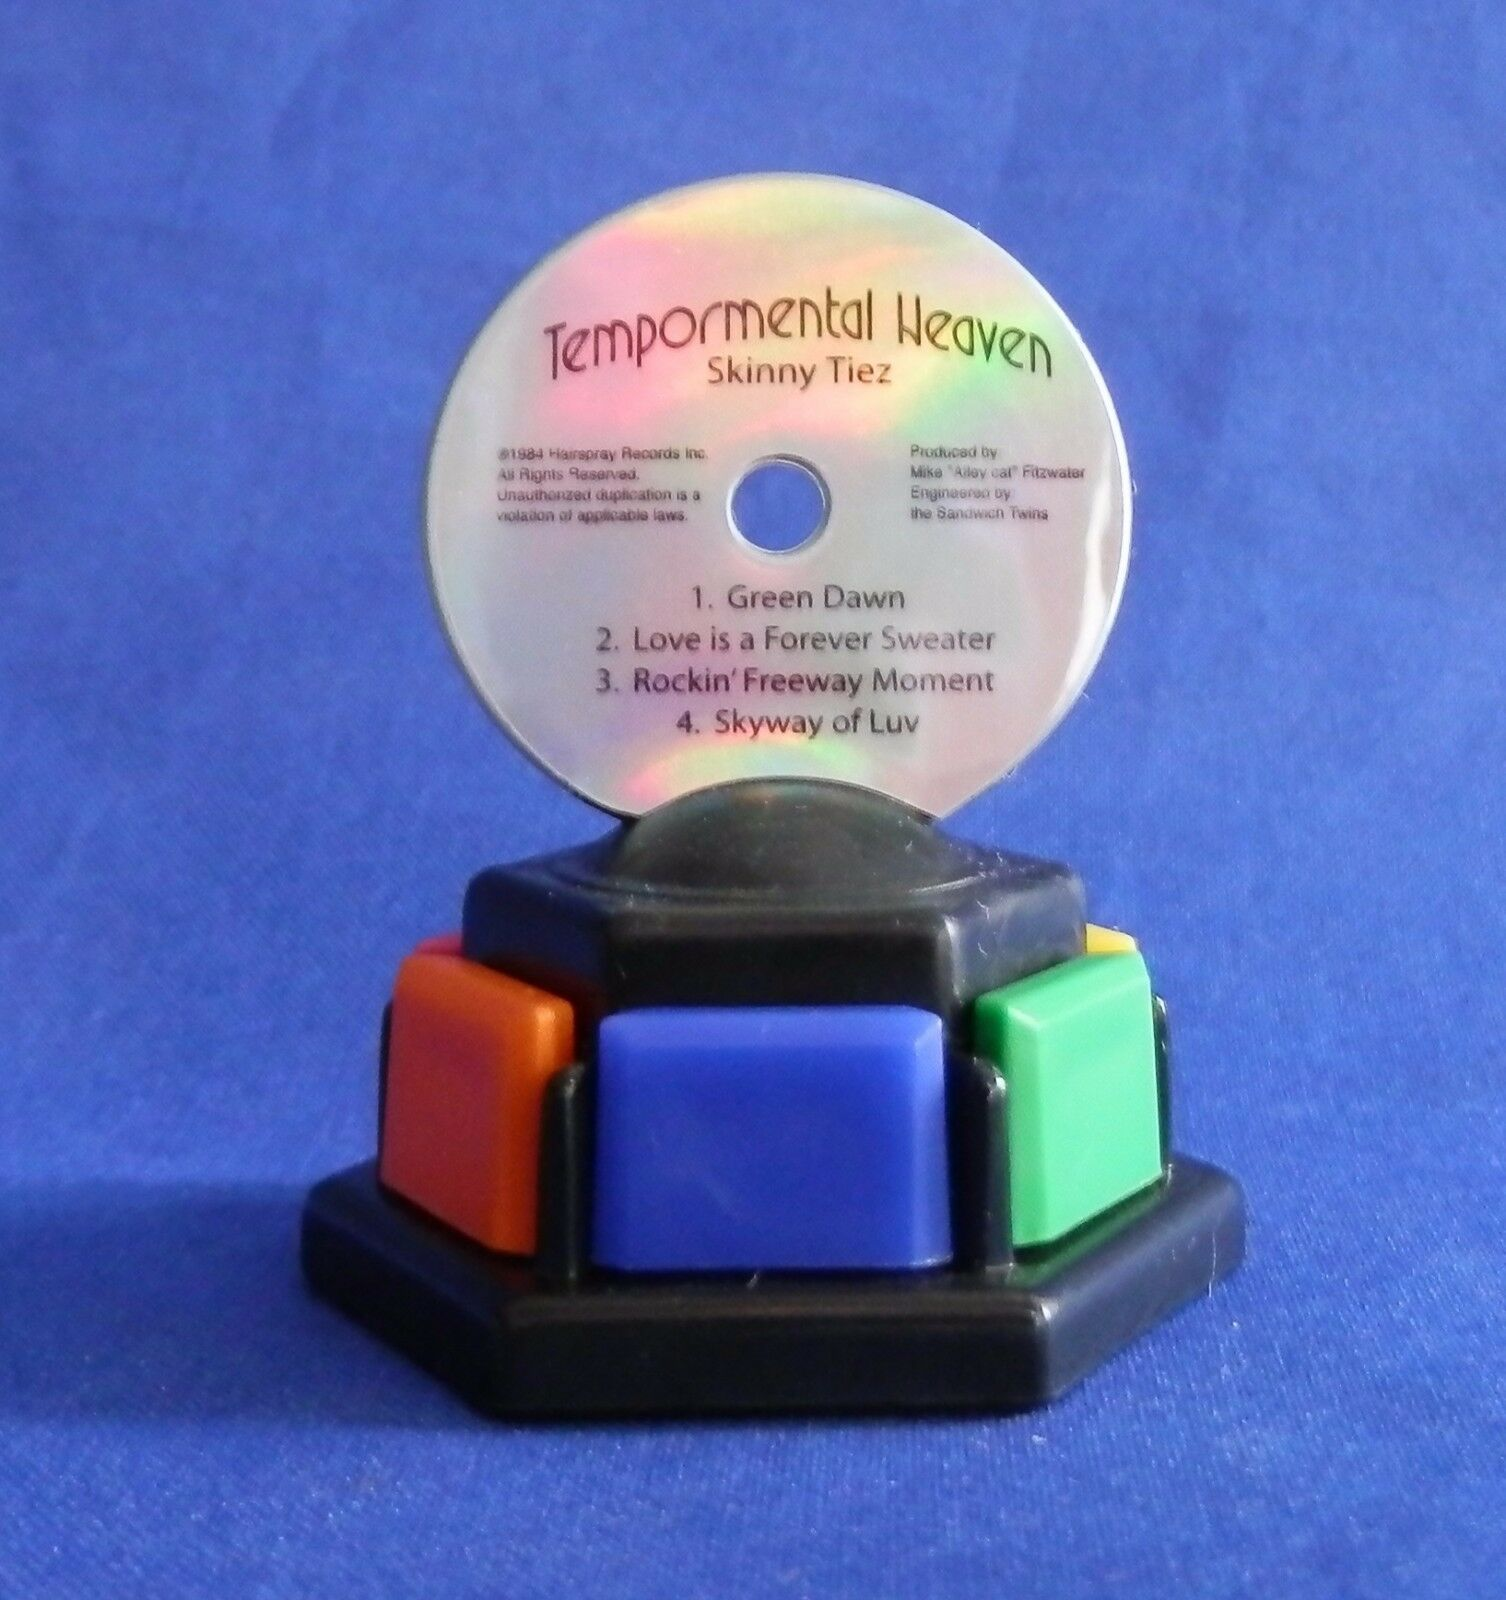 Trivial Pursuit Totally 80's Tempormental Heaven CD Replacement Game Token Pawn - $5.99